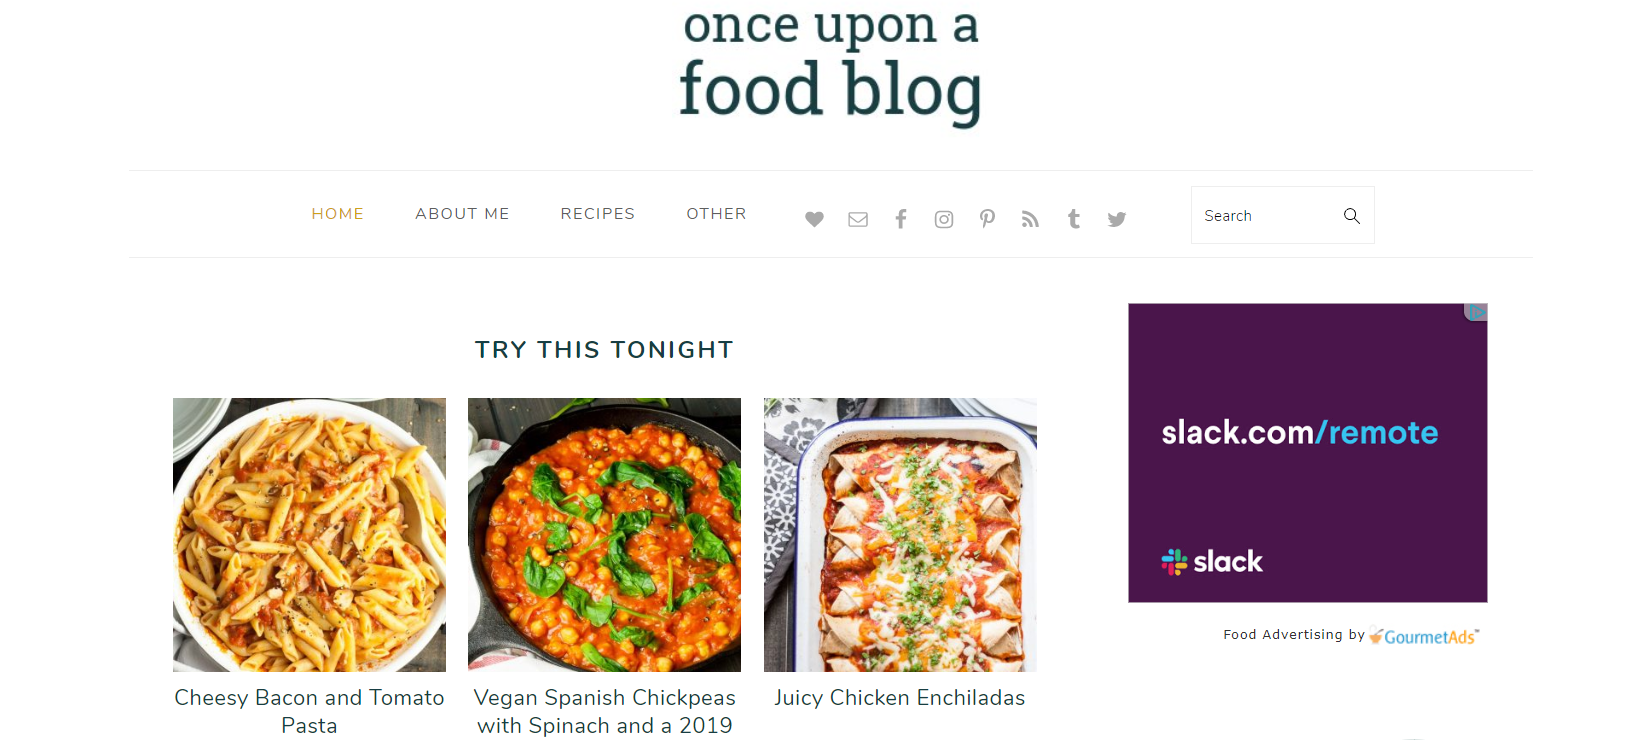 a once upon a food blog